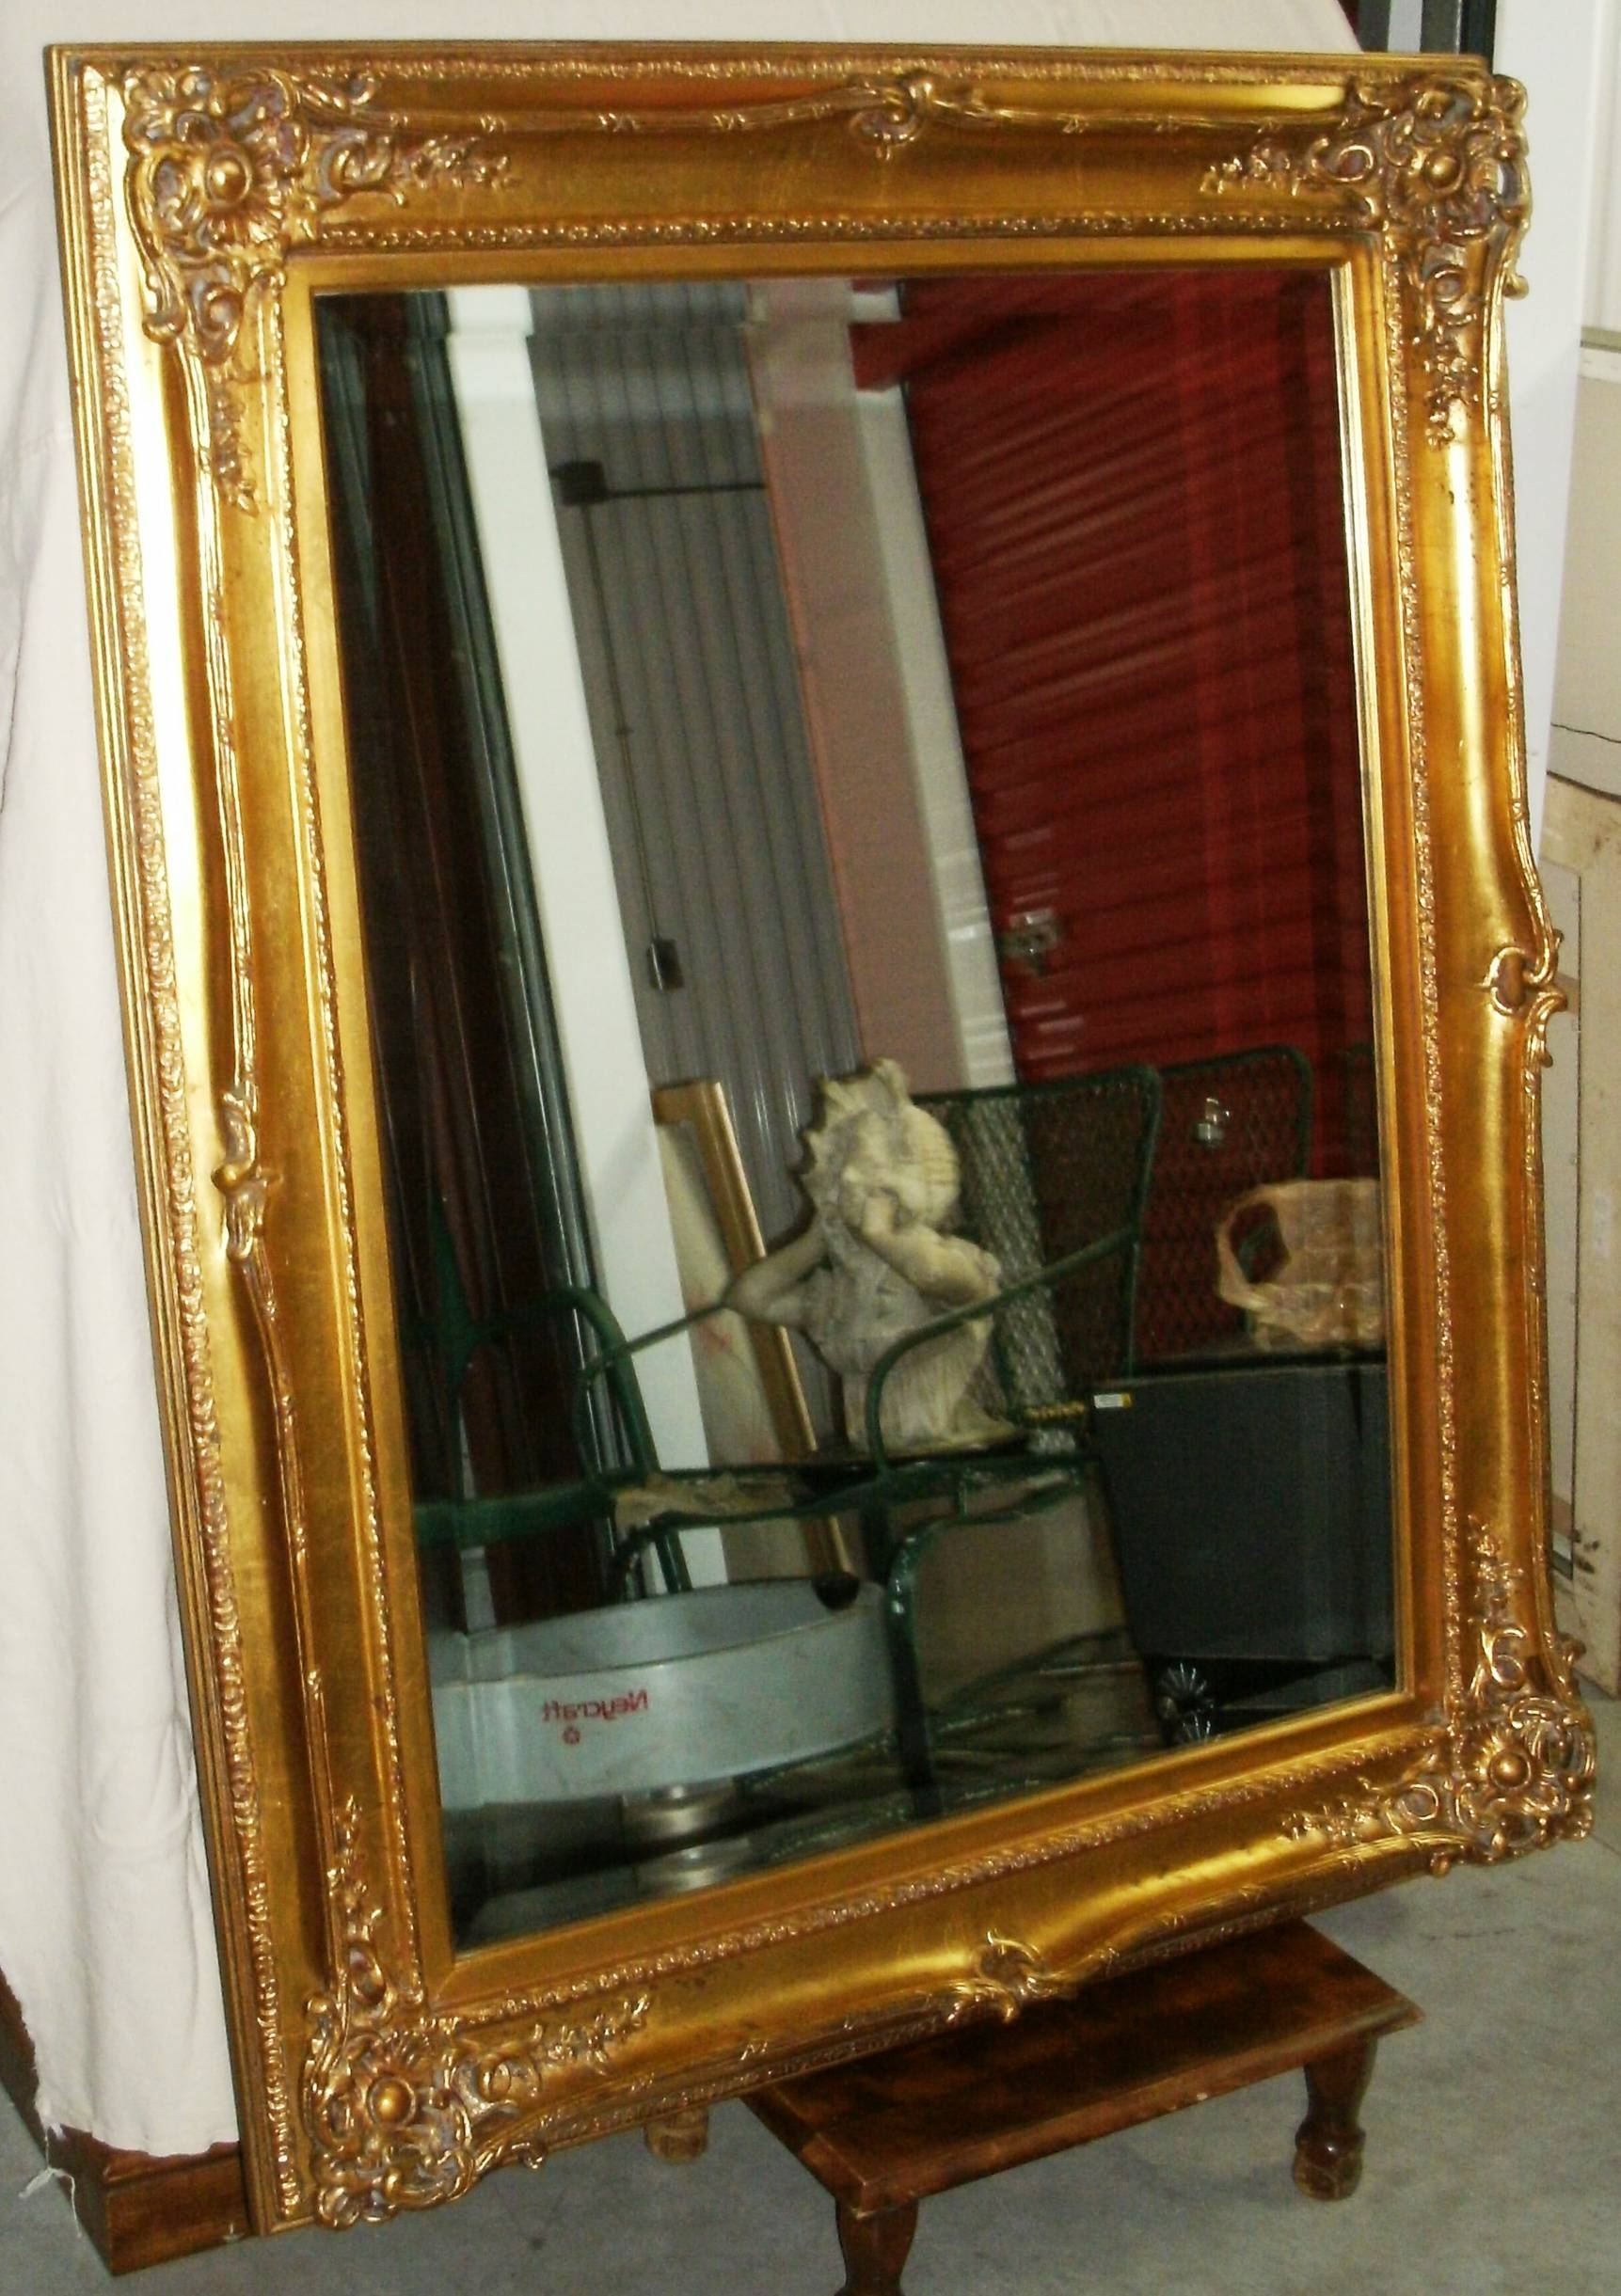 Ornate Mirrors For Sale 81 Nice Decorating With Large Ornate Gold for Ornate Gold Mirrors (Image 21 of 25)